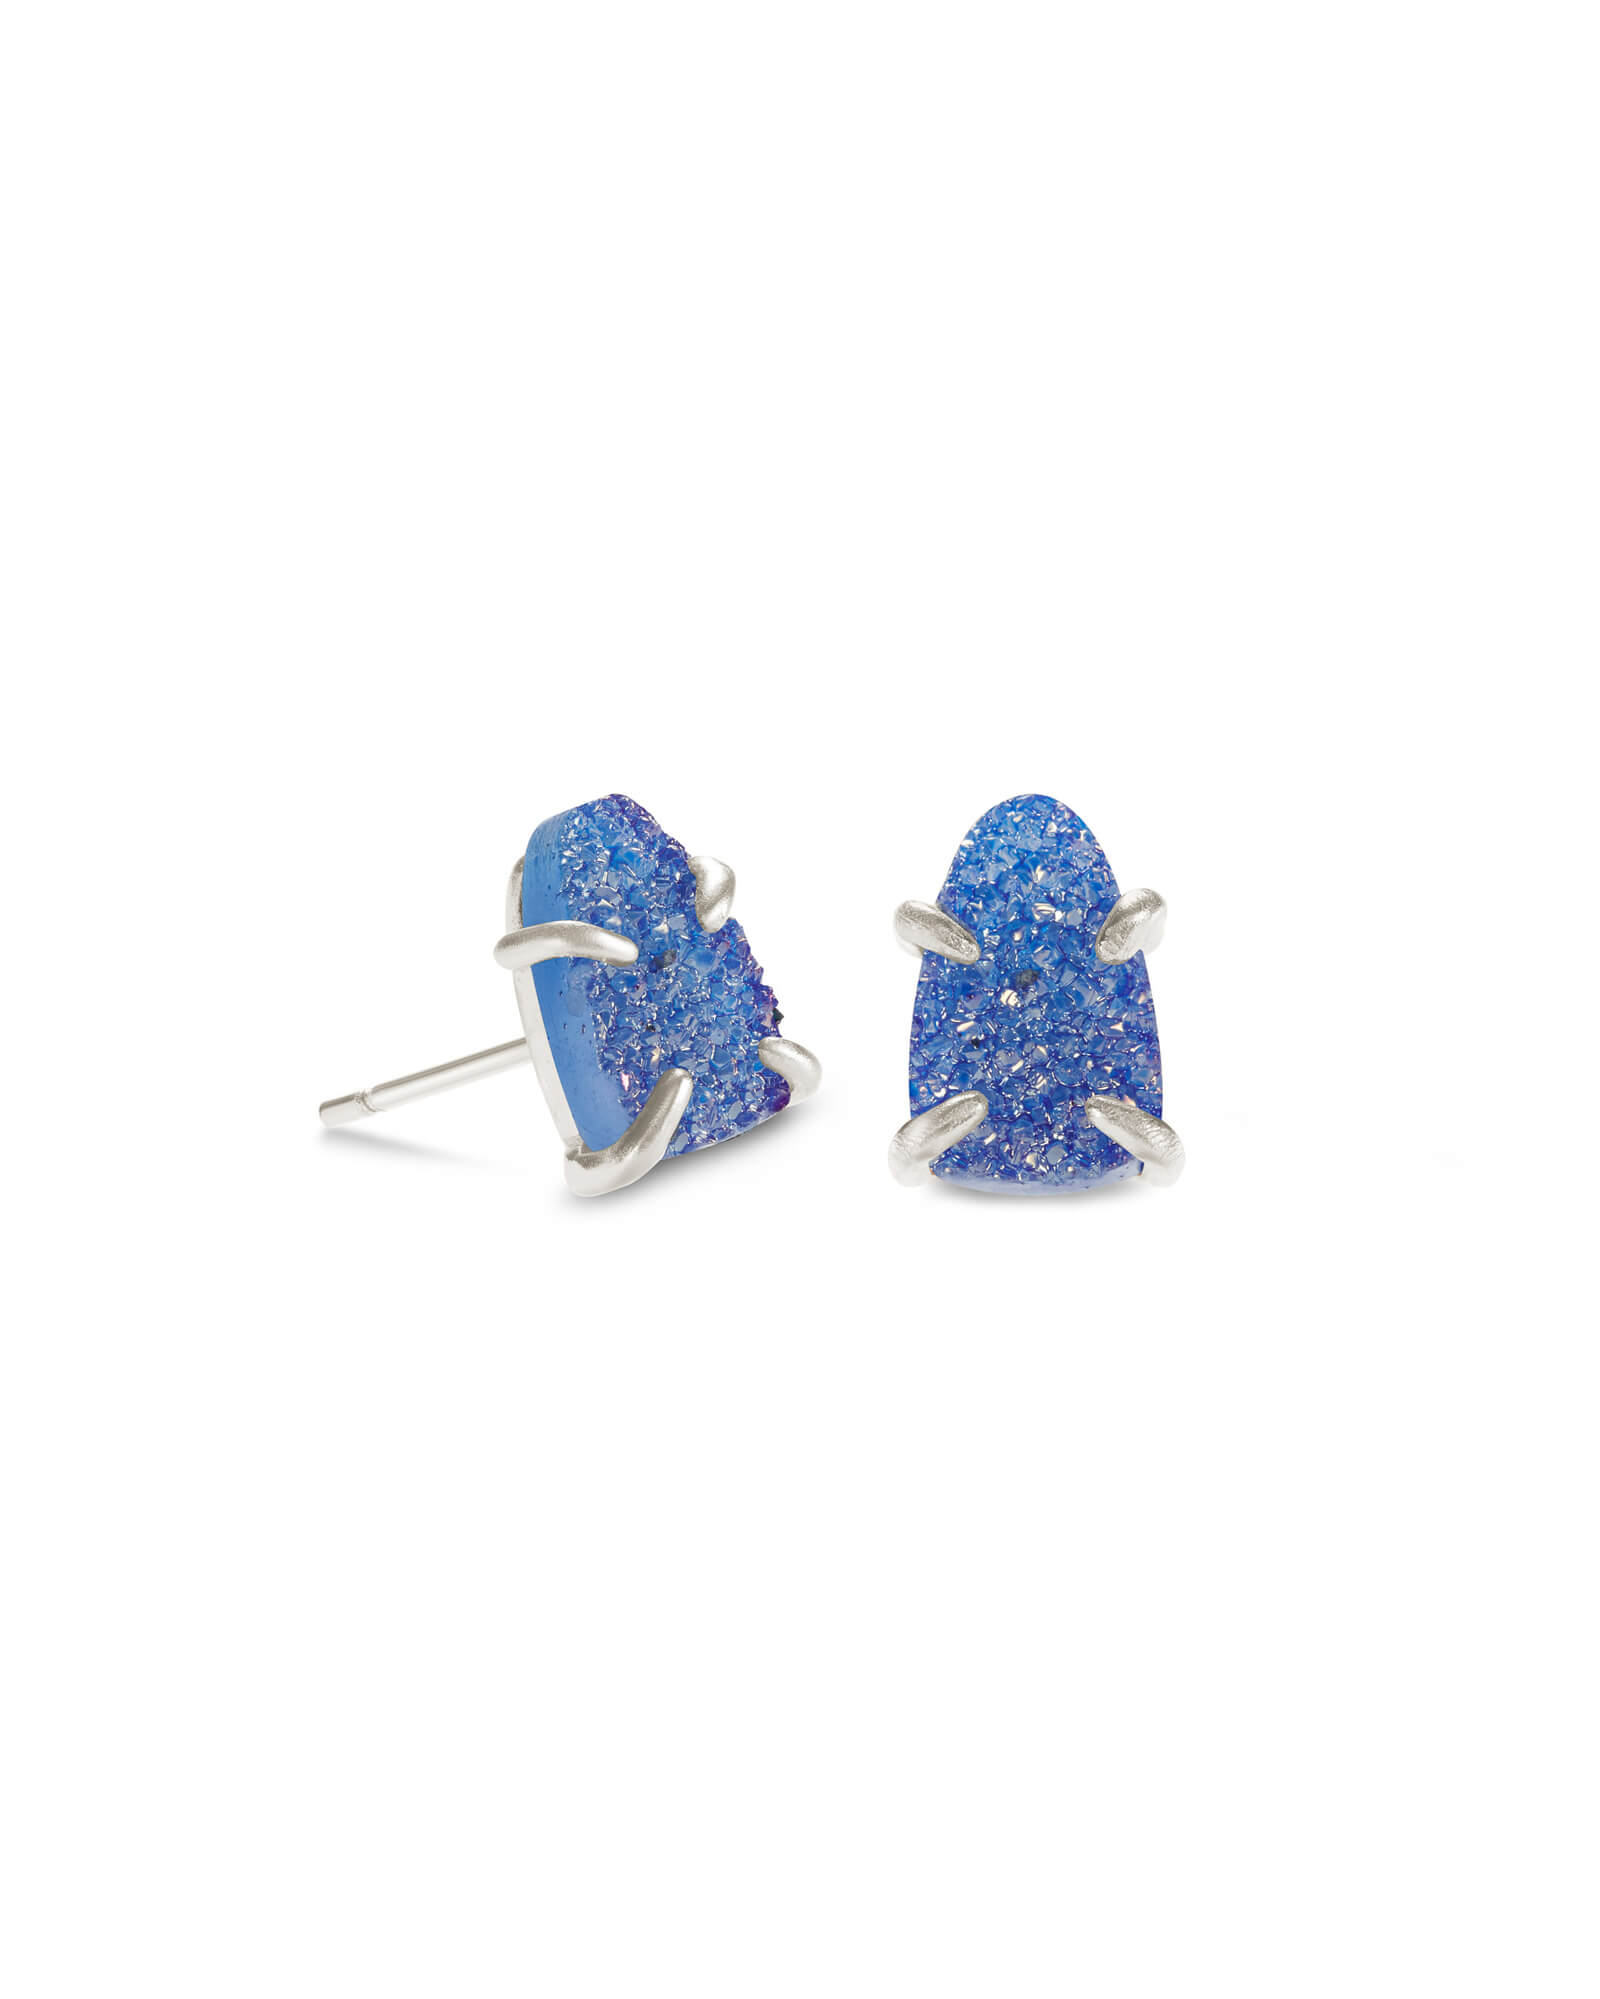 Harriett Silver Stud Earrings in Periwinkle Drusy